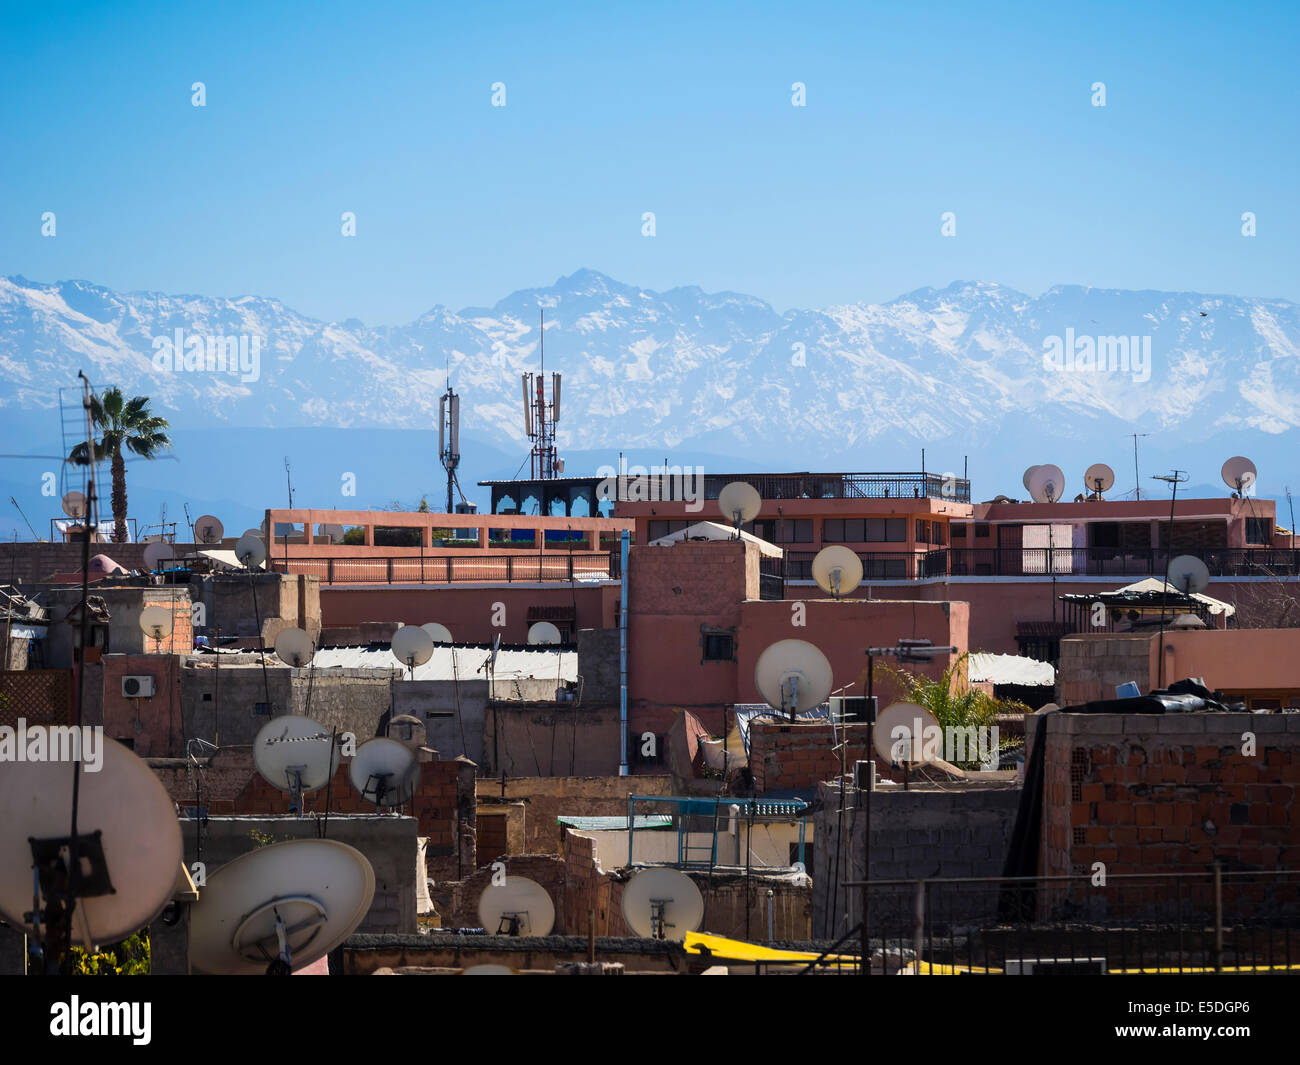 Morocco, Marrakech, View over roofs with satellite dishes towards Atlas mountains - Stock Image